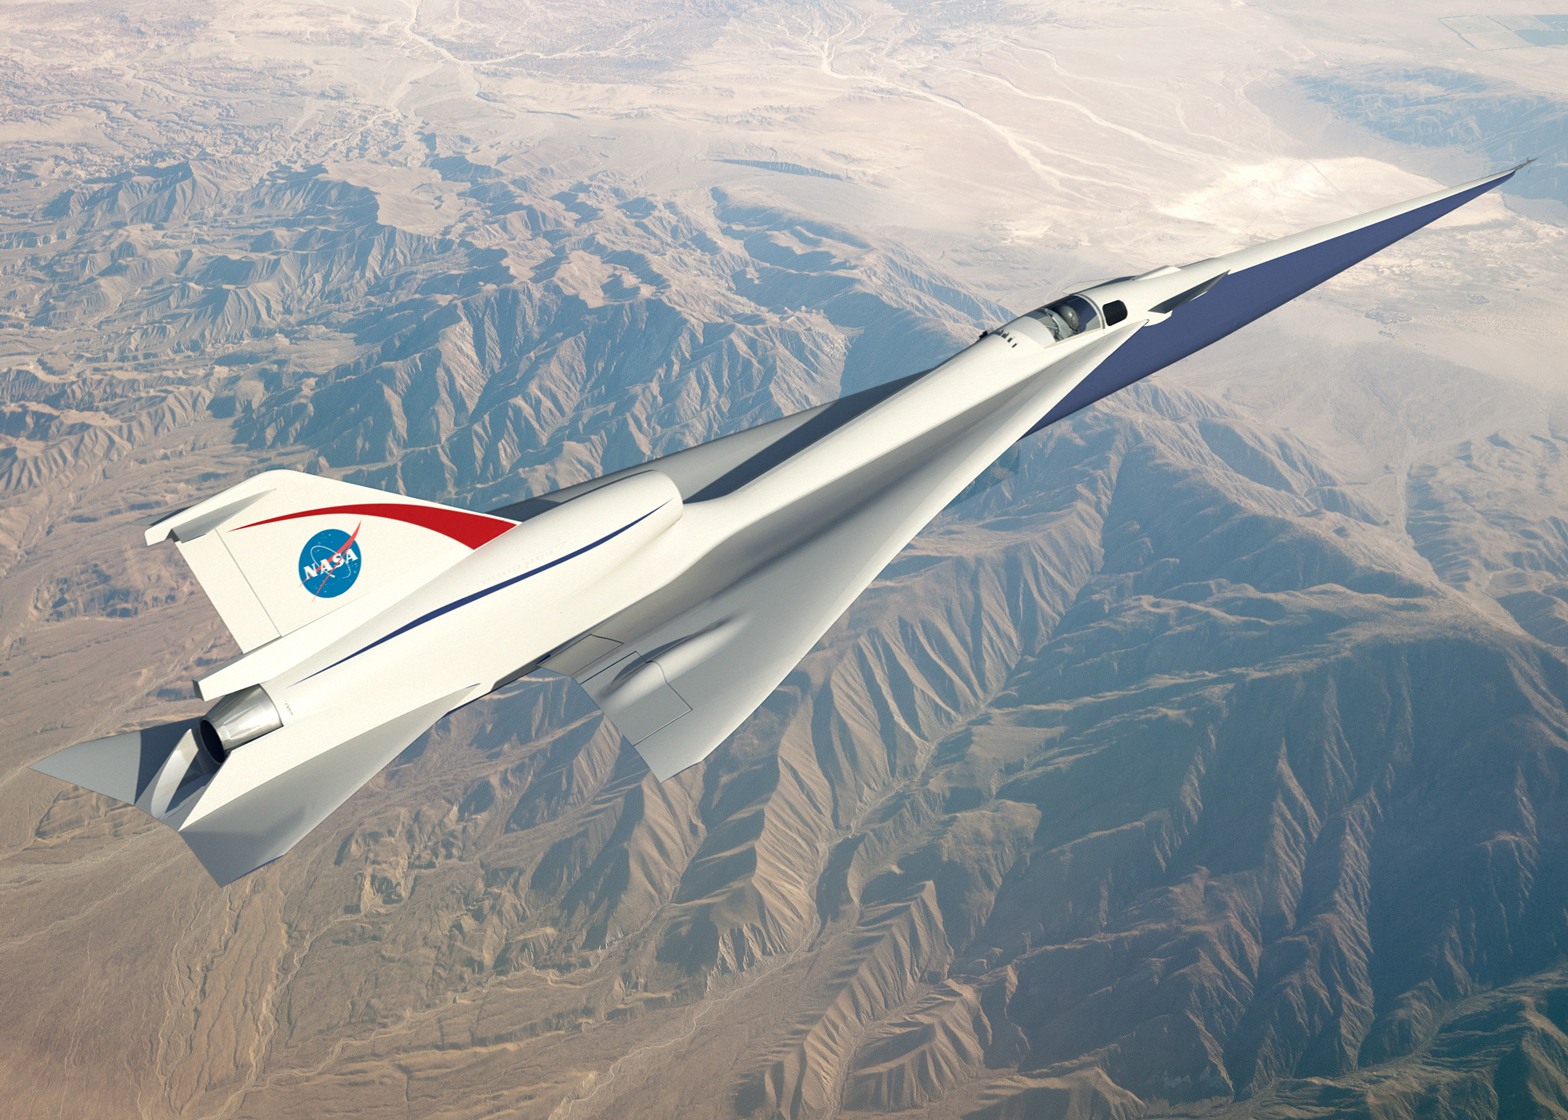 NASA supersonic plane